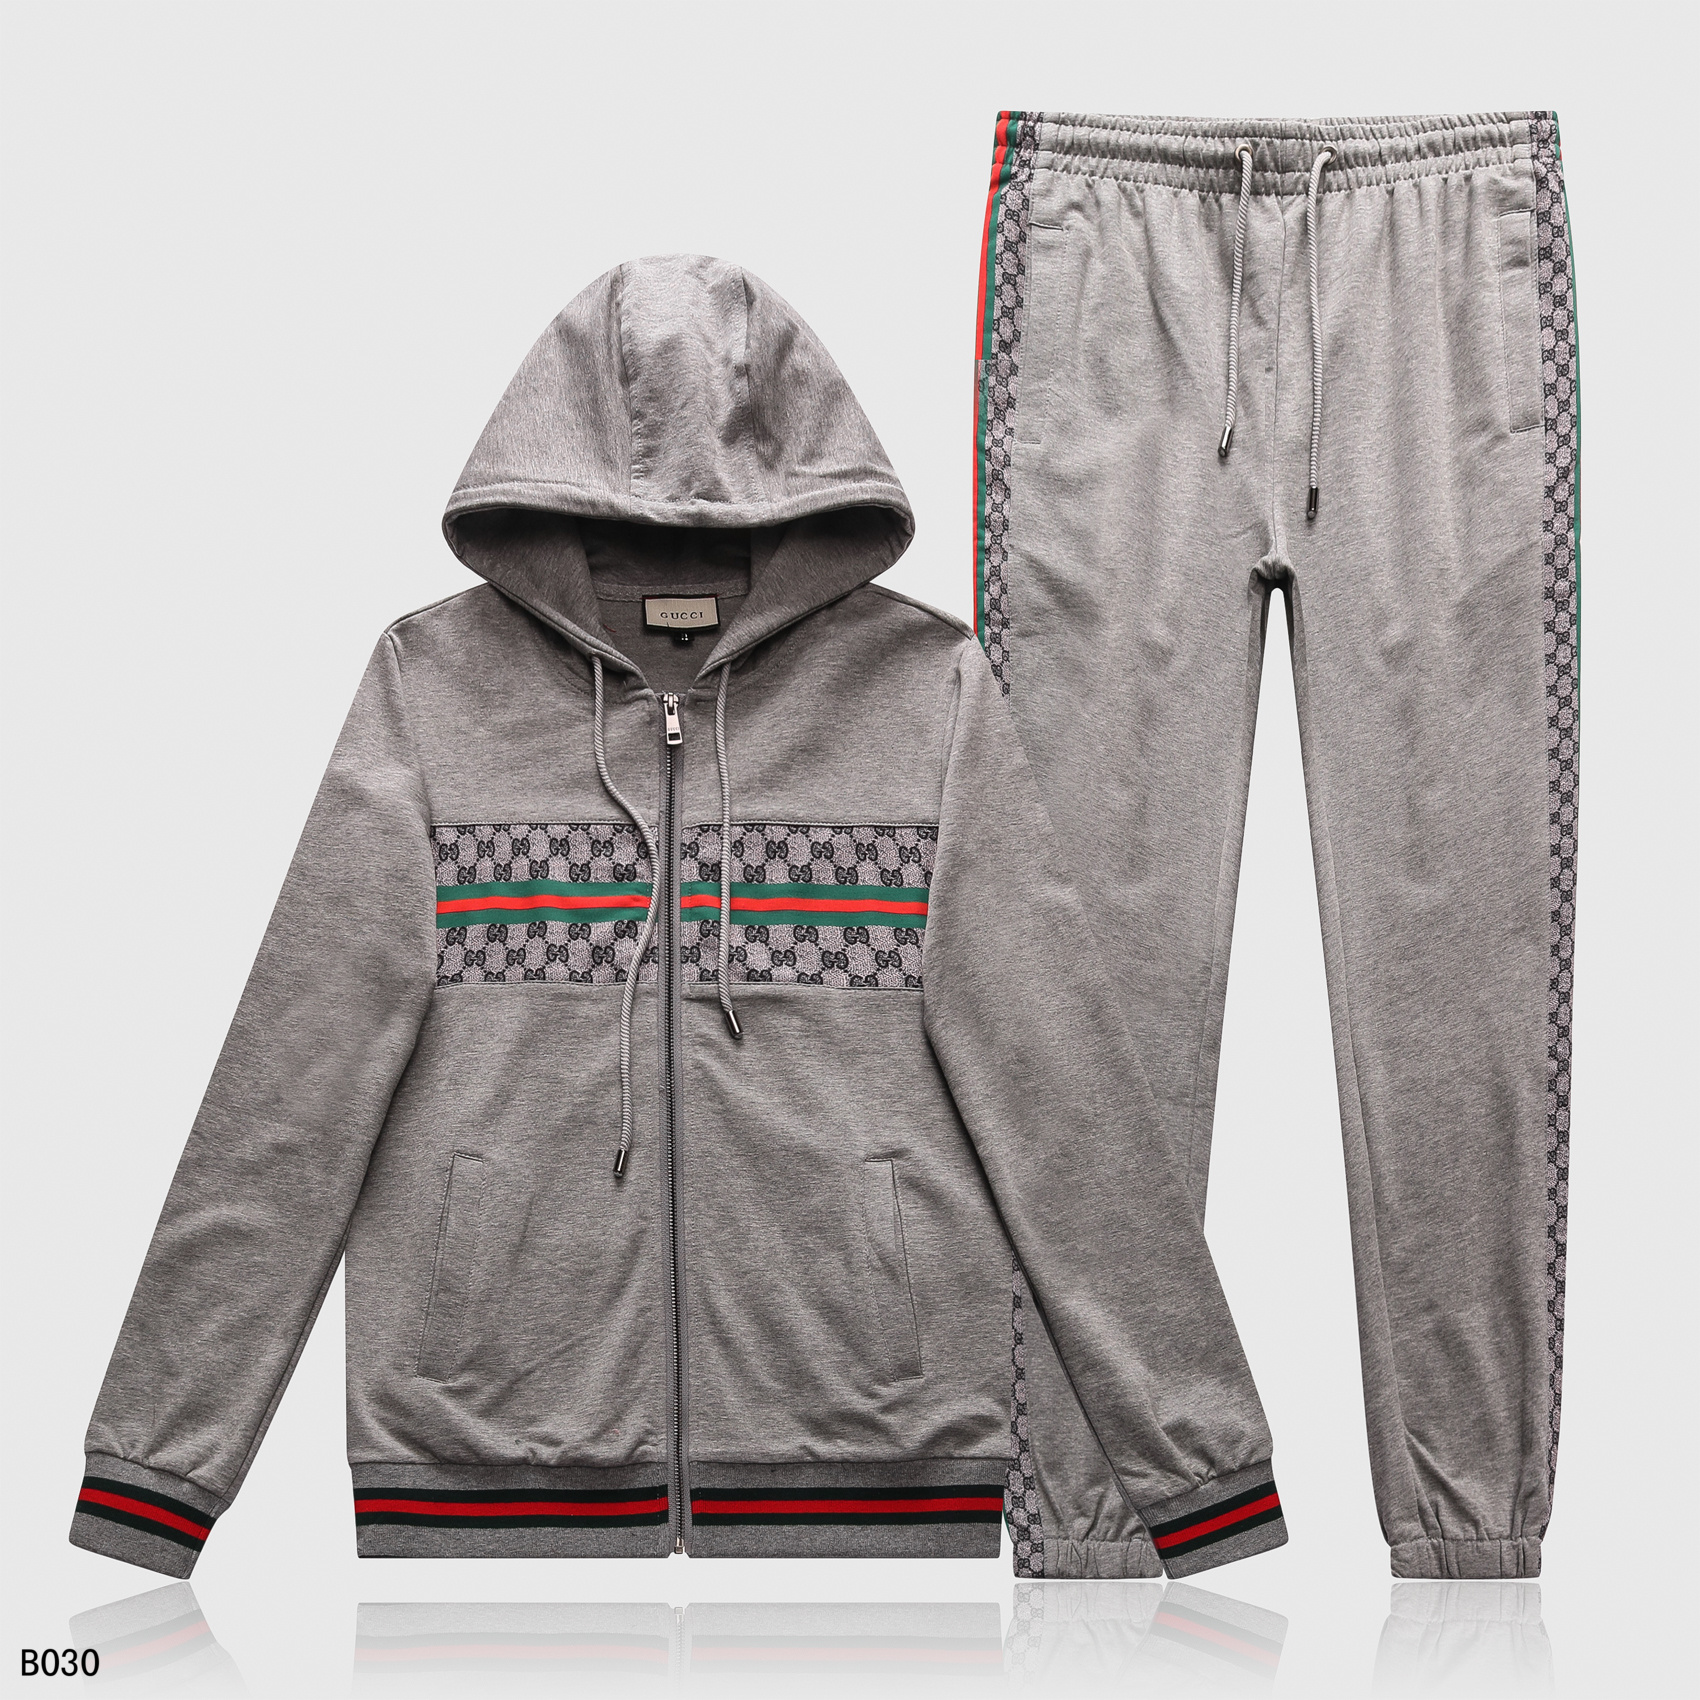 2020 Cheap Gucci Tracksuits in 225949, cheap Gucci Tracksuits, only $69!